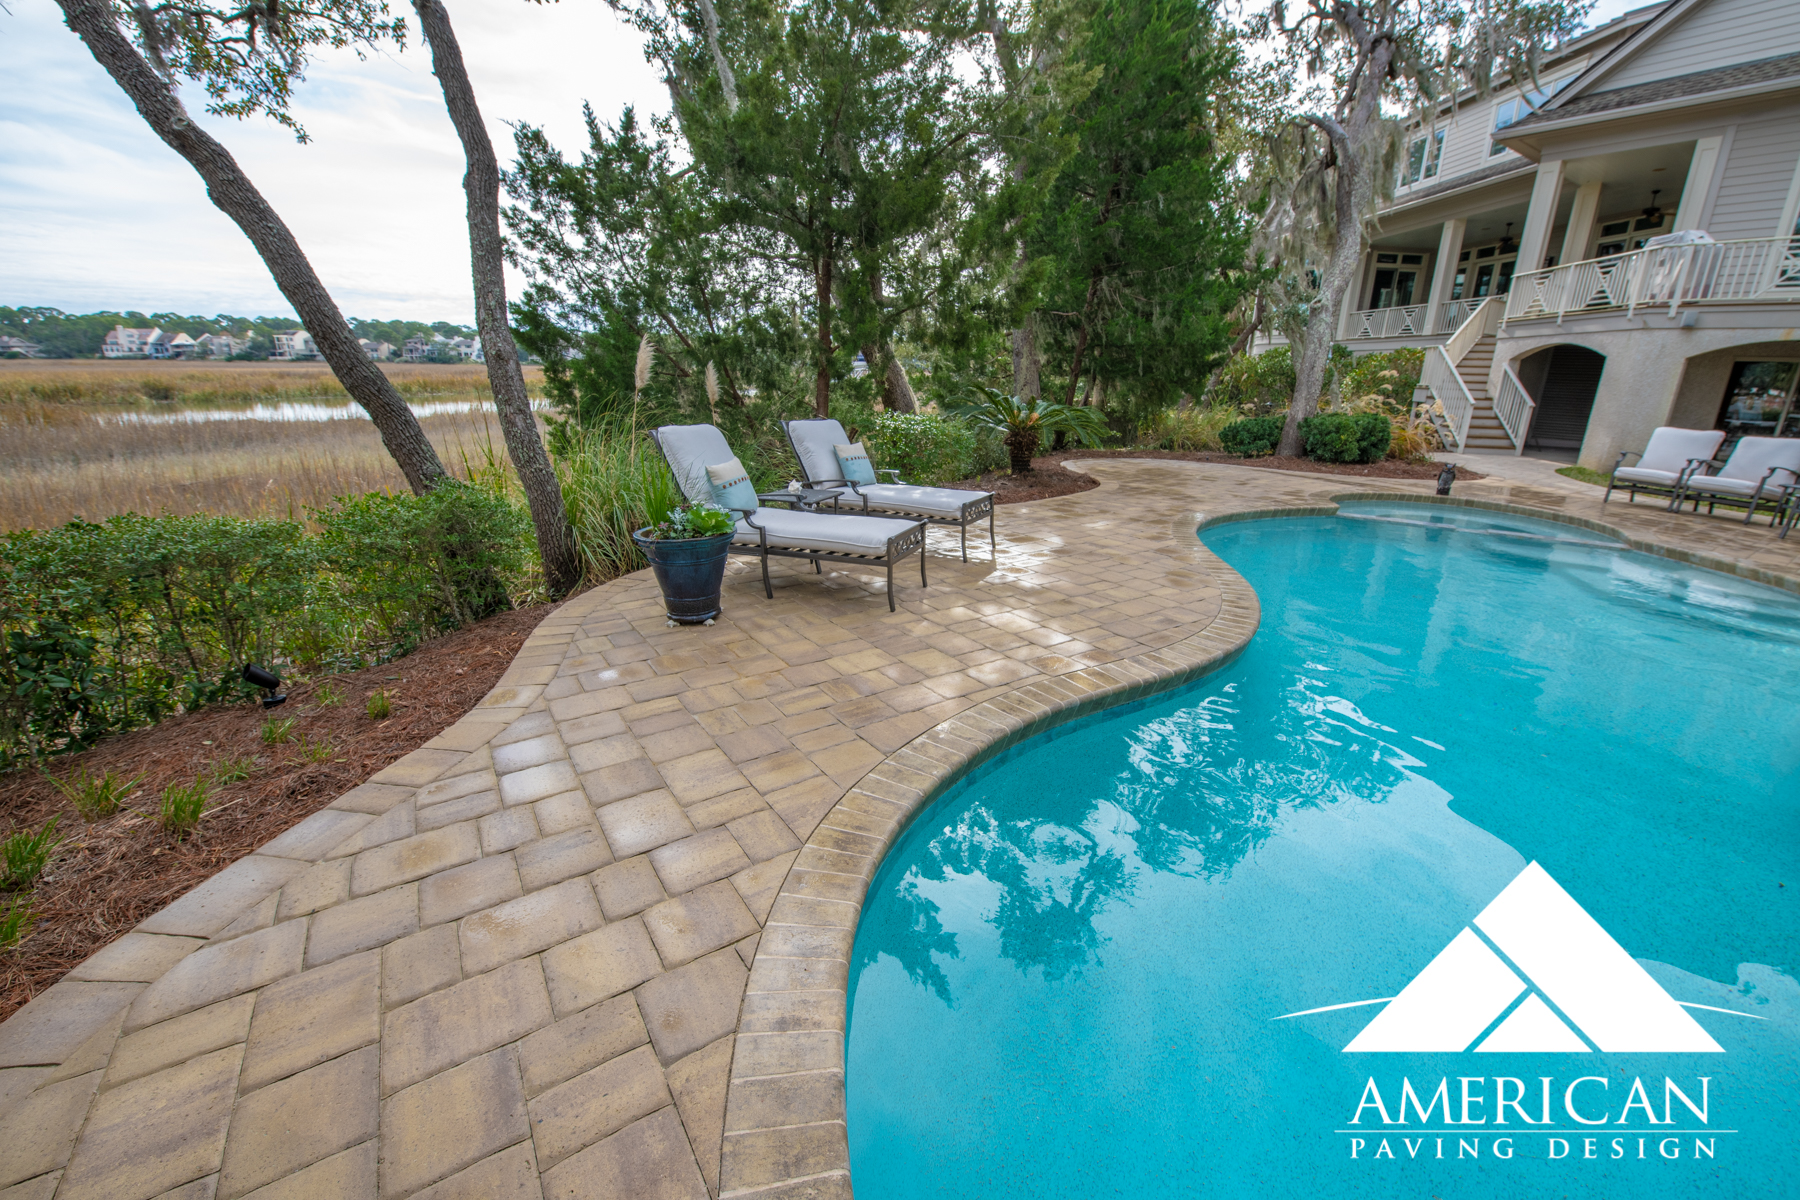 Paver pool decks  and coping installation can be as affordable or luxurious as you want to make it. Normally pool coping will cost an extra $15-25 a sq foot depending on material selections.